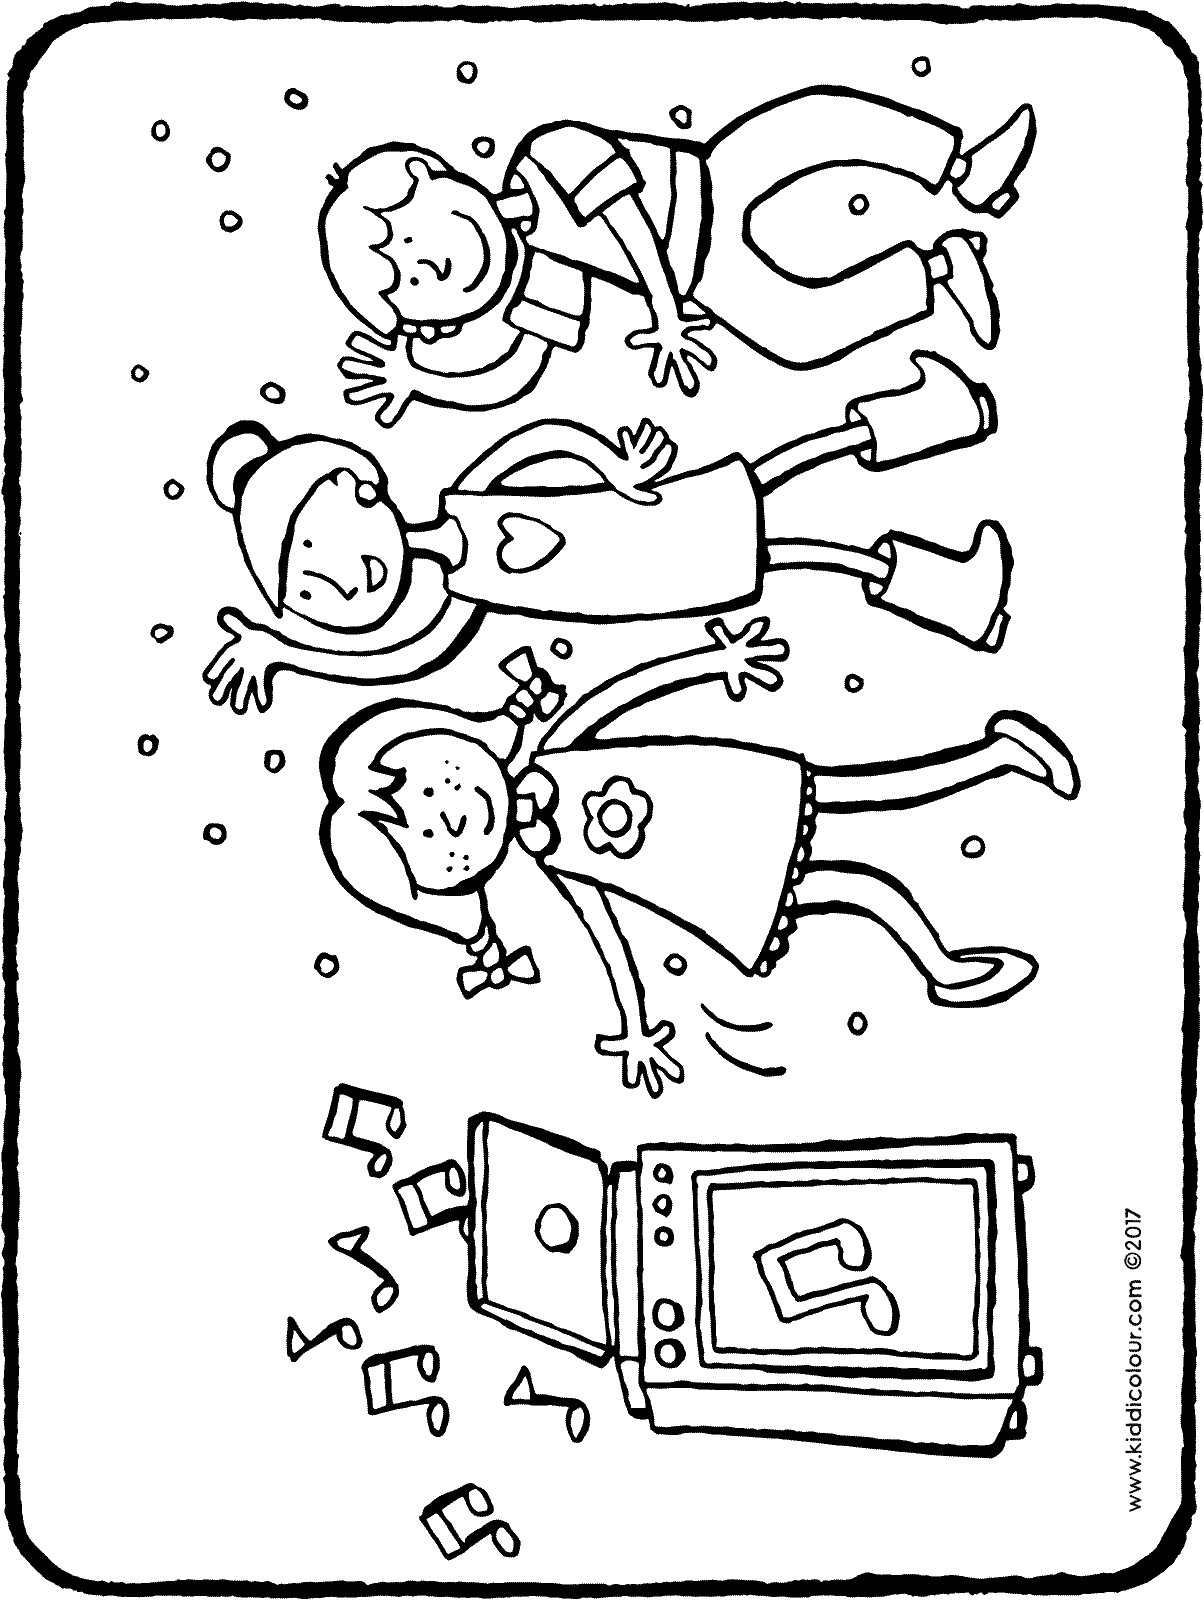 disco coloring pages | children's disco - kiddicolour